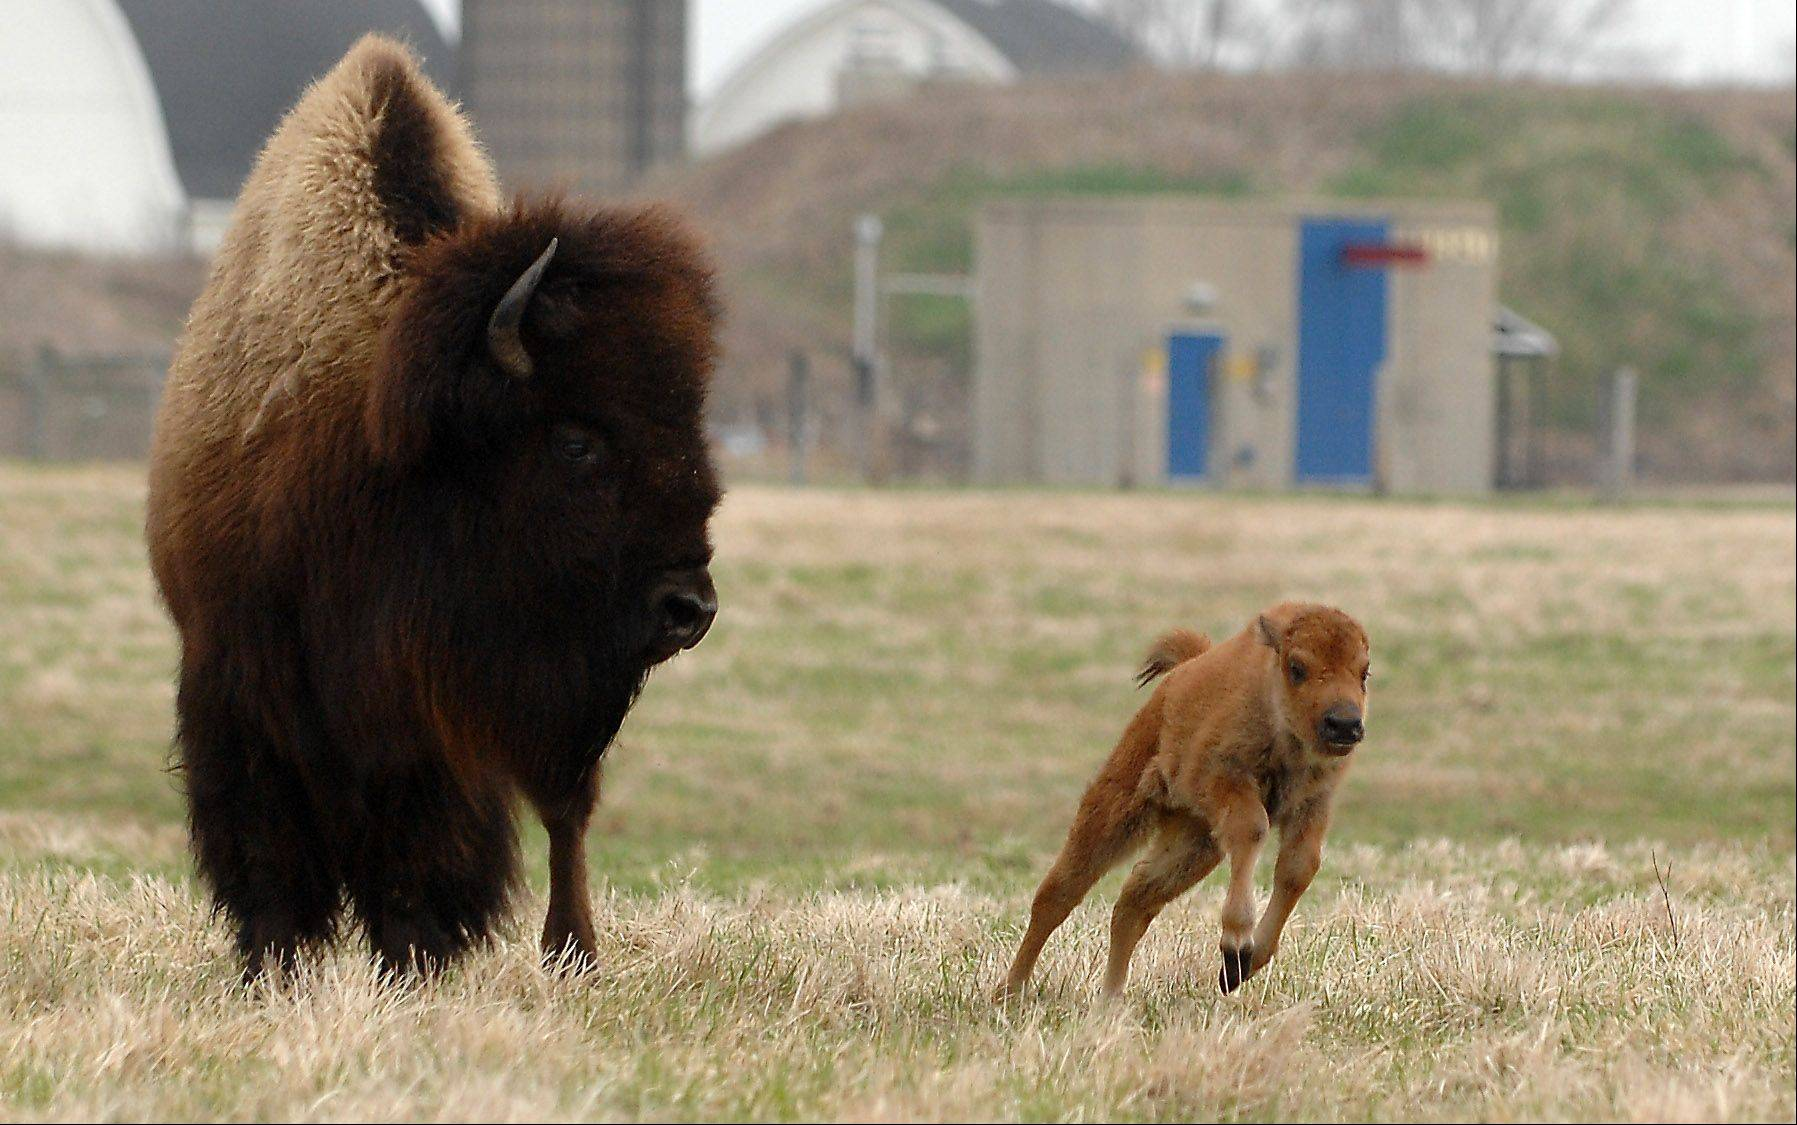 A 2-day-old bison calf goes for a run under the watchful eye of its mother at Fermilab in Batavia Tuesday. Calves were born Sunday and Monday, and another eight to 10 may be yet to come.